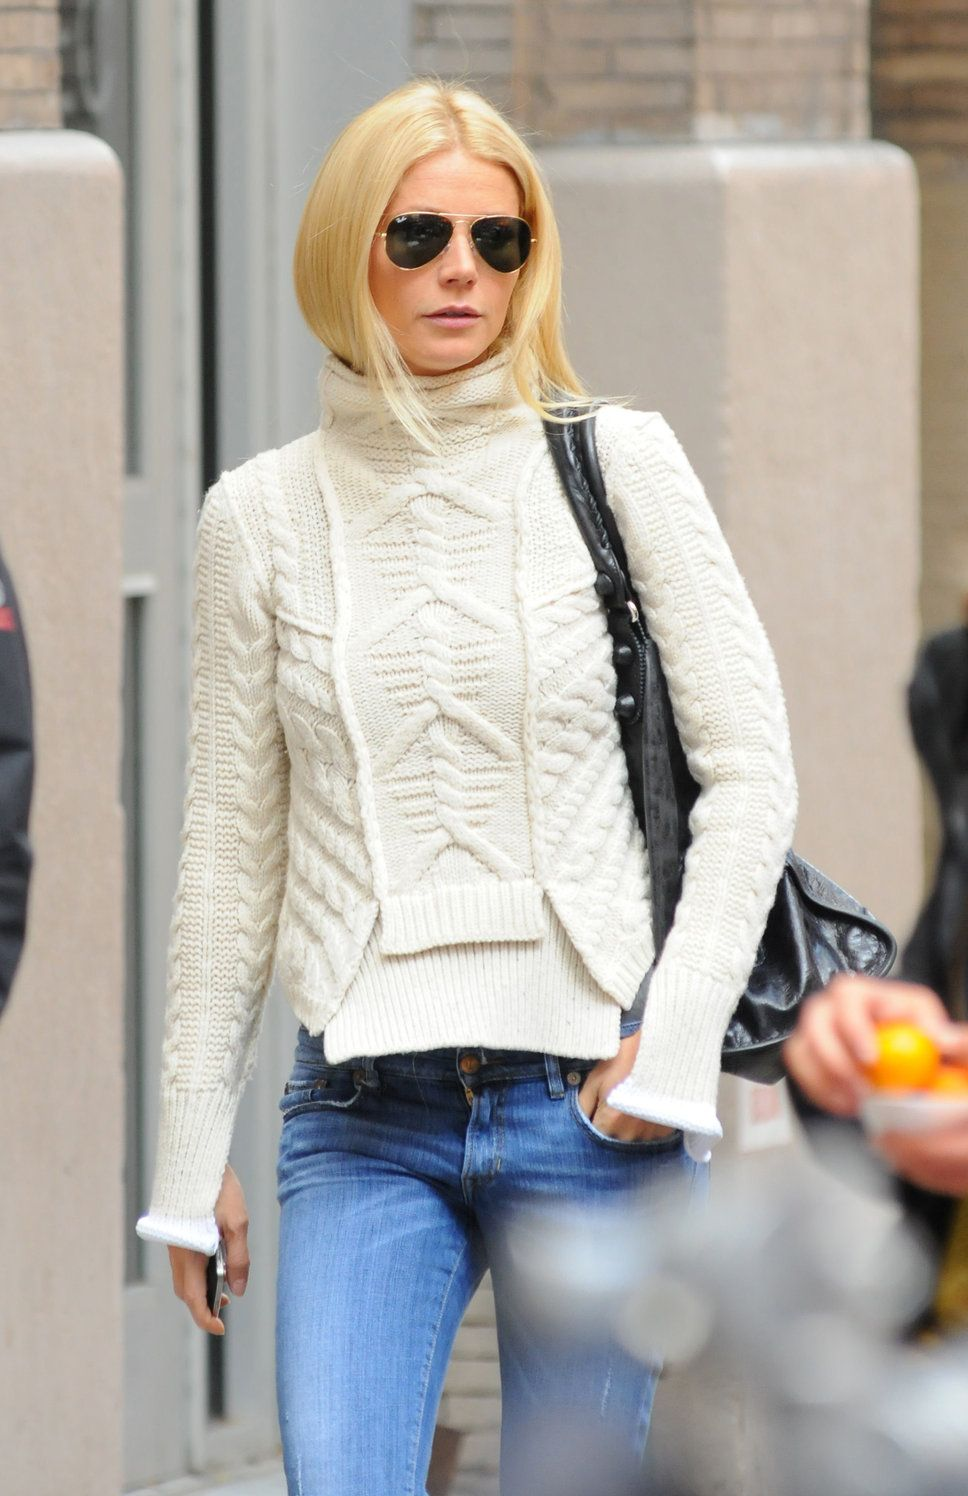 white knit sweater - Google 検索 | Hooks n Needles | Pinterest ...